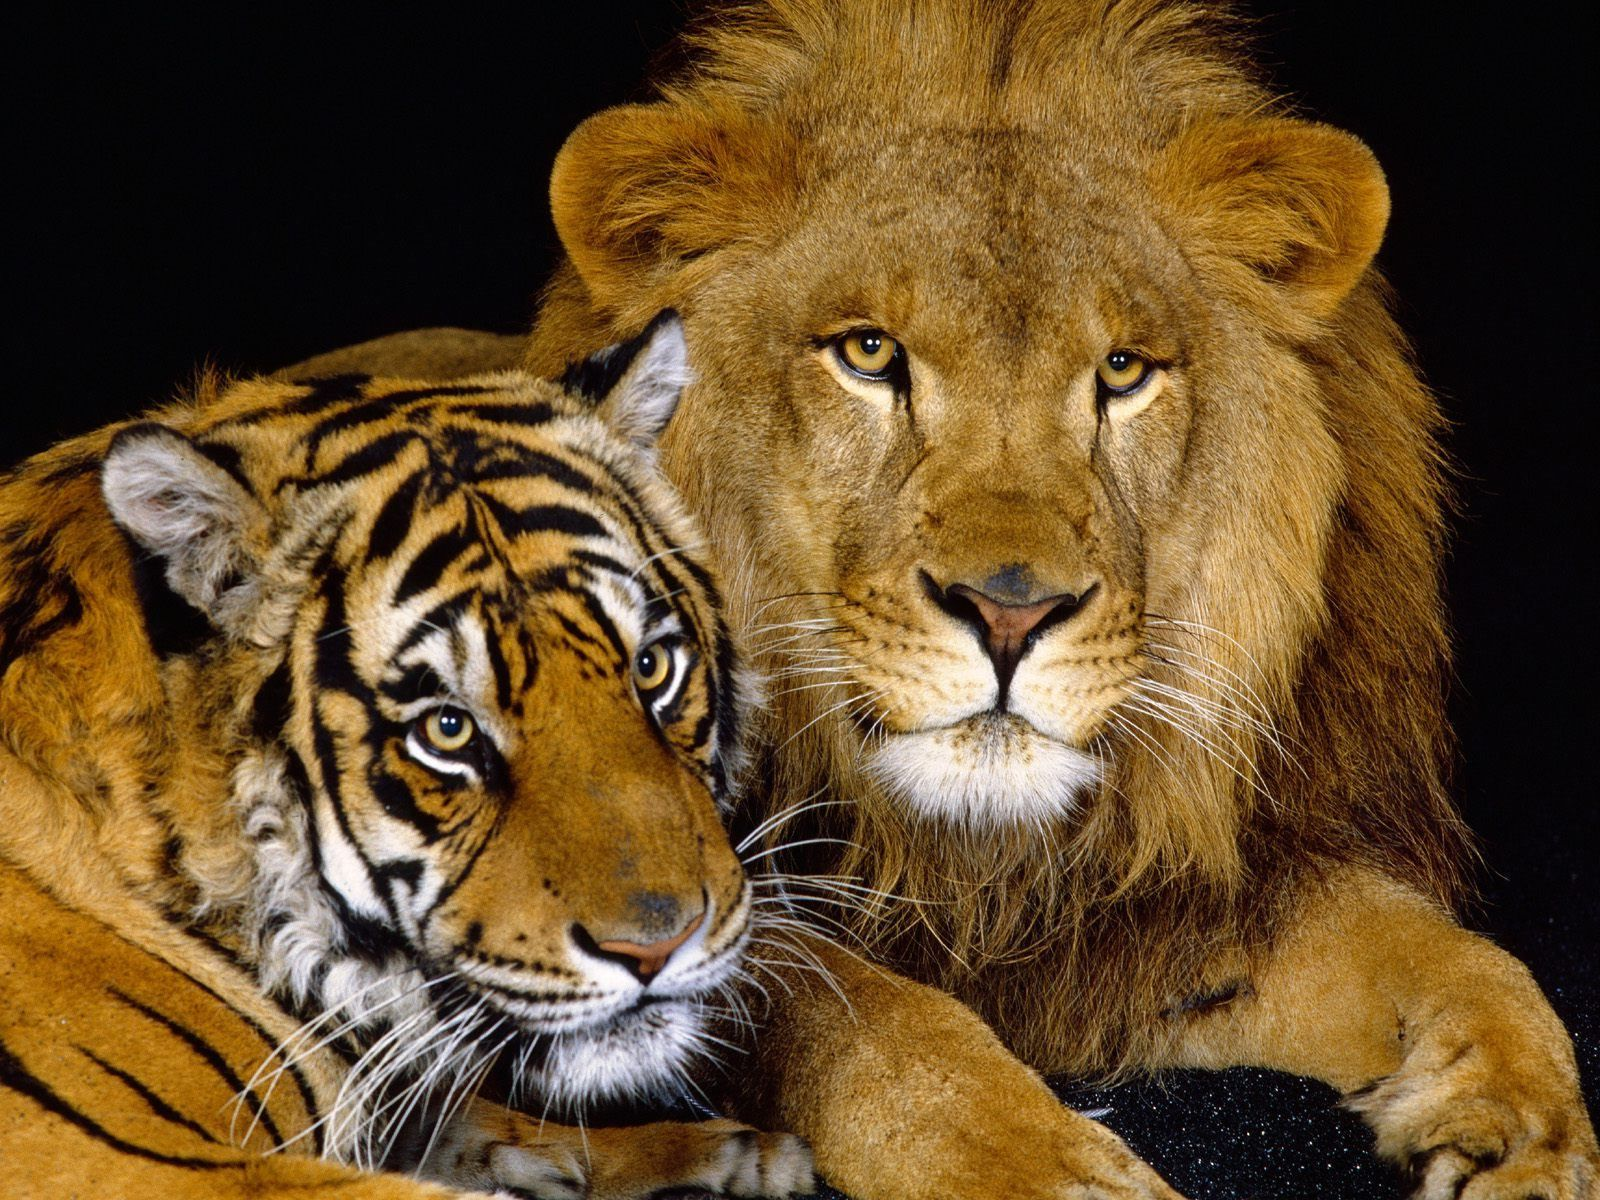 lion and tiger wallpaper - photo #3